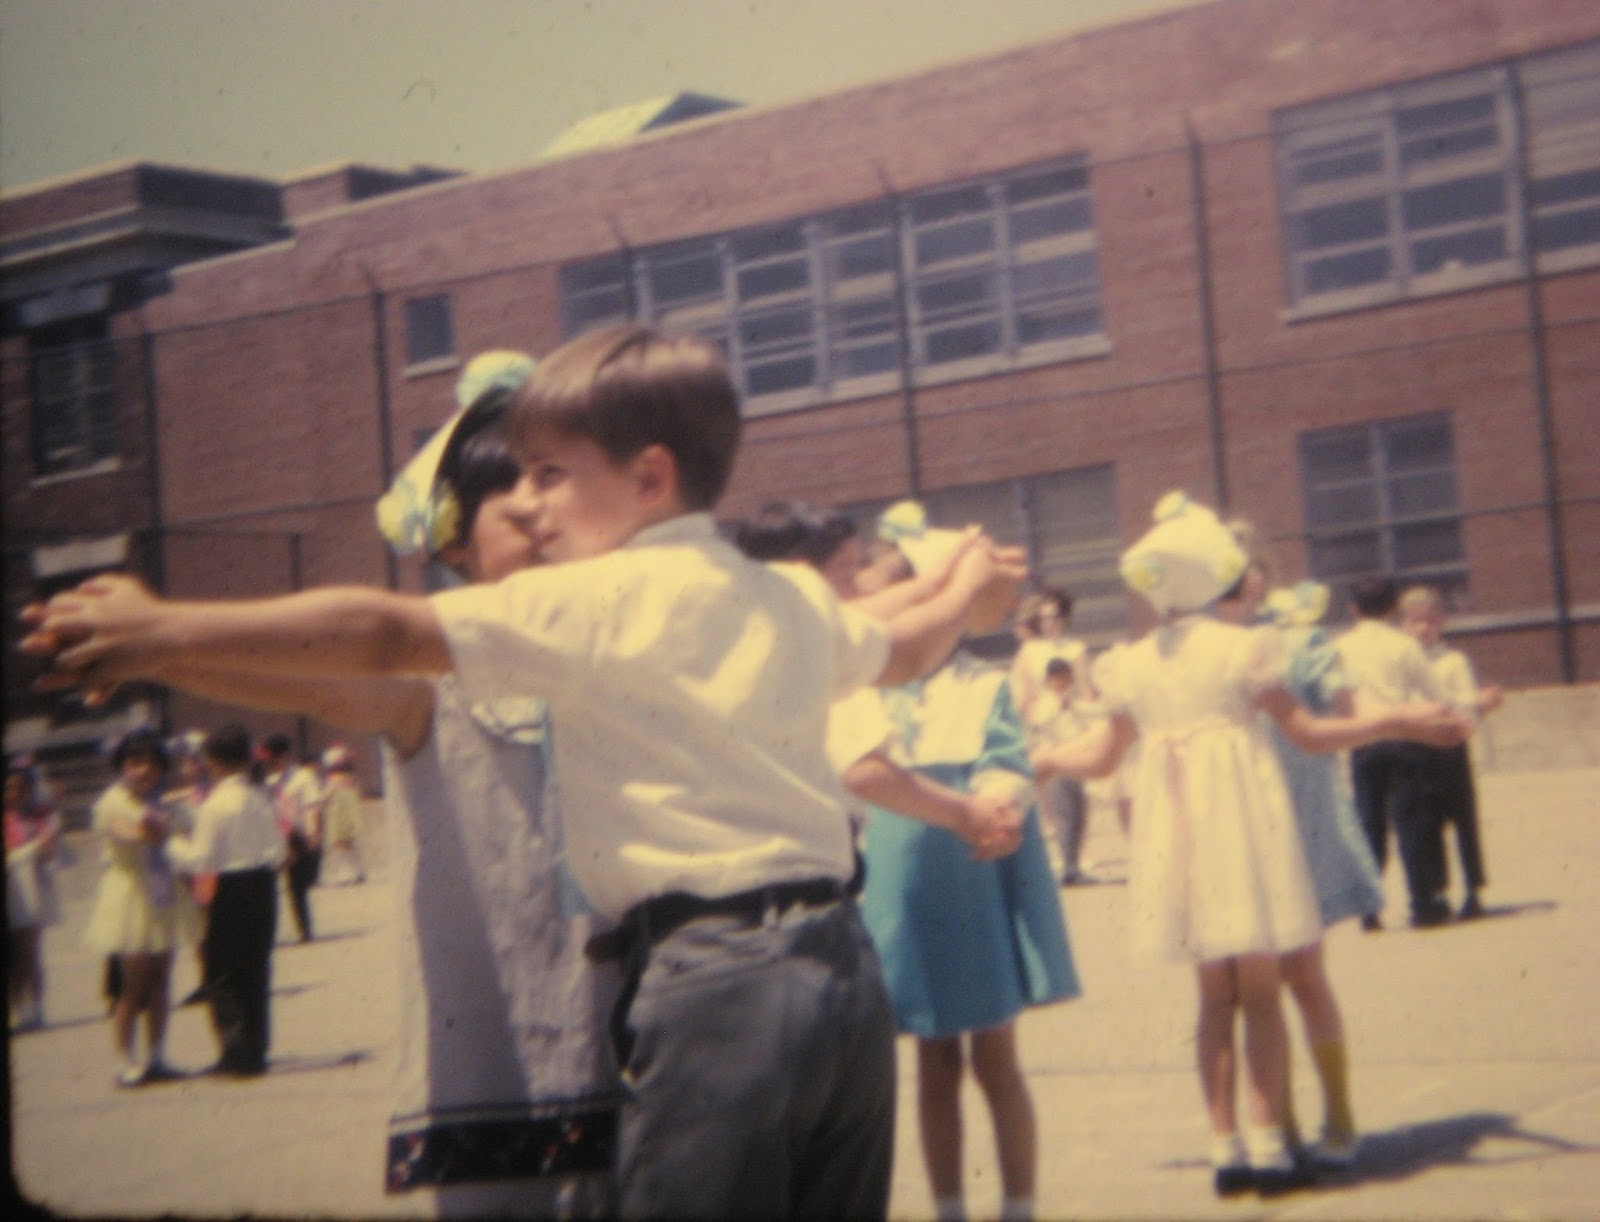 Tommy Mondello at age 7 square dance PS22 June 1968